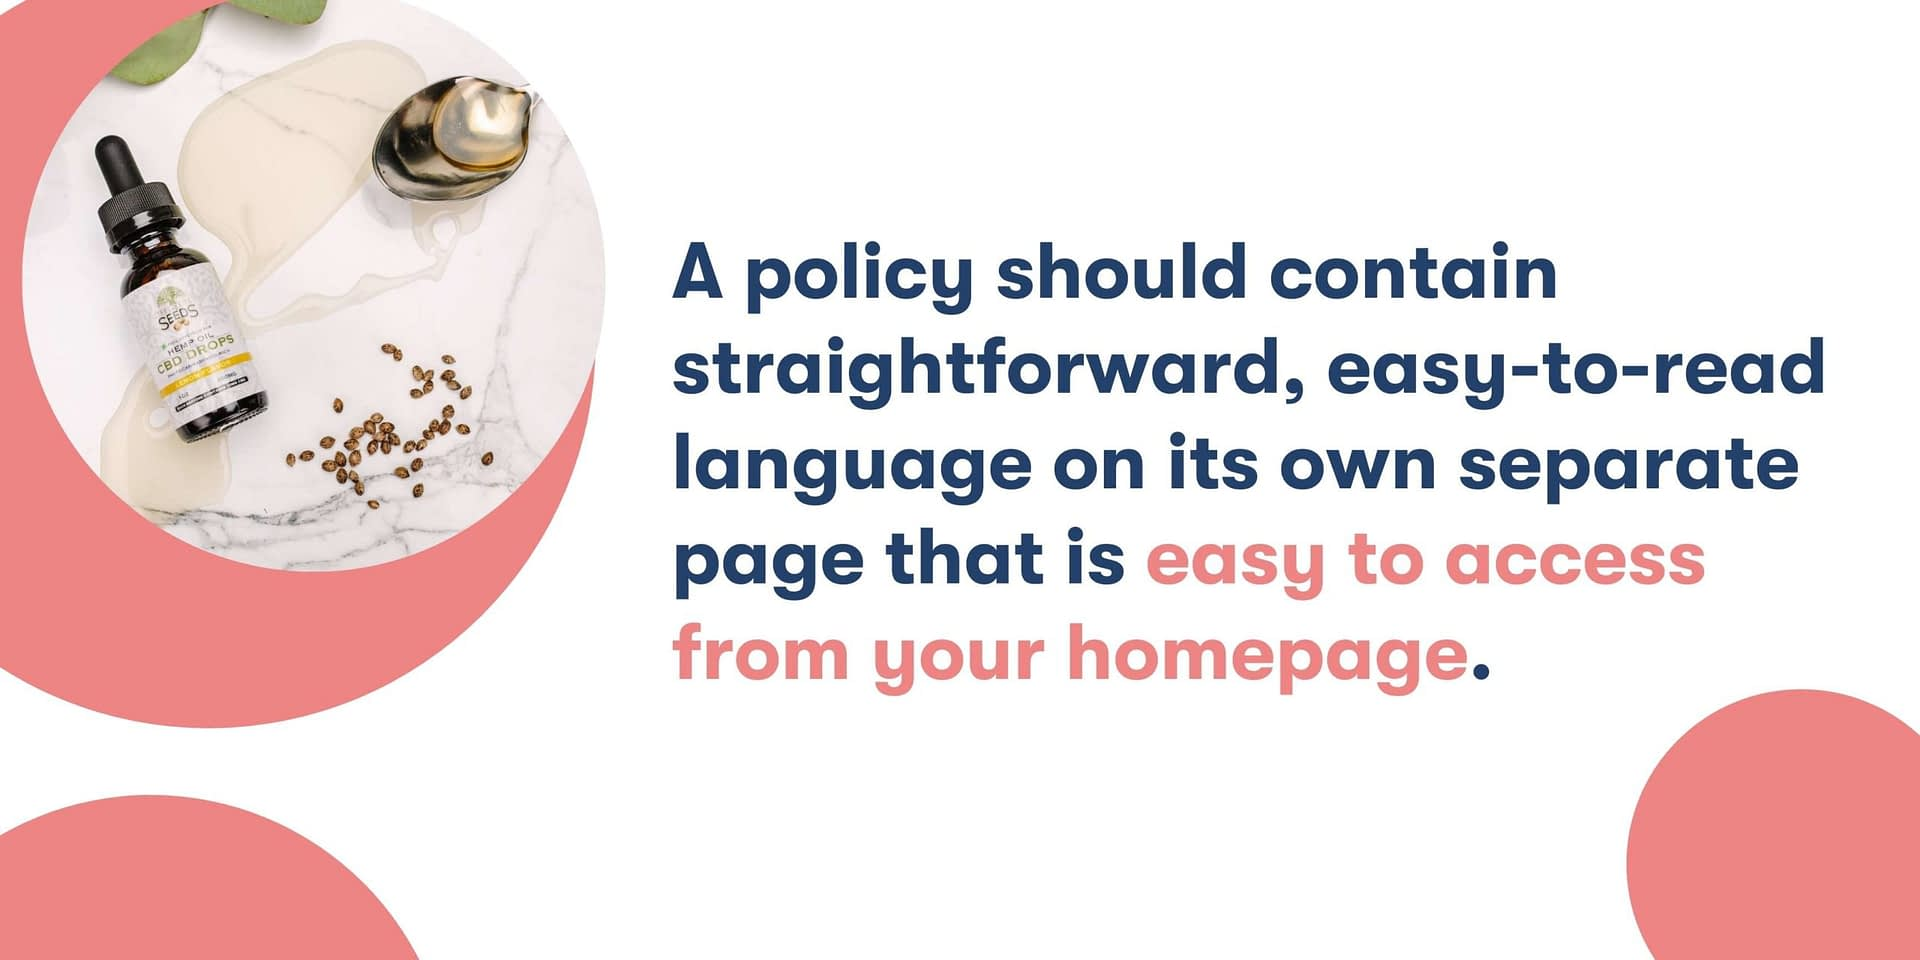 A policy should be easy-to-understand on a page that is easy to access from homepage